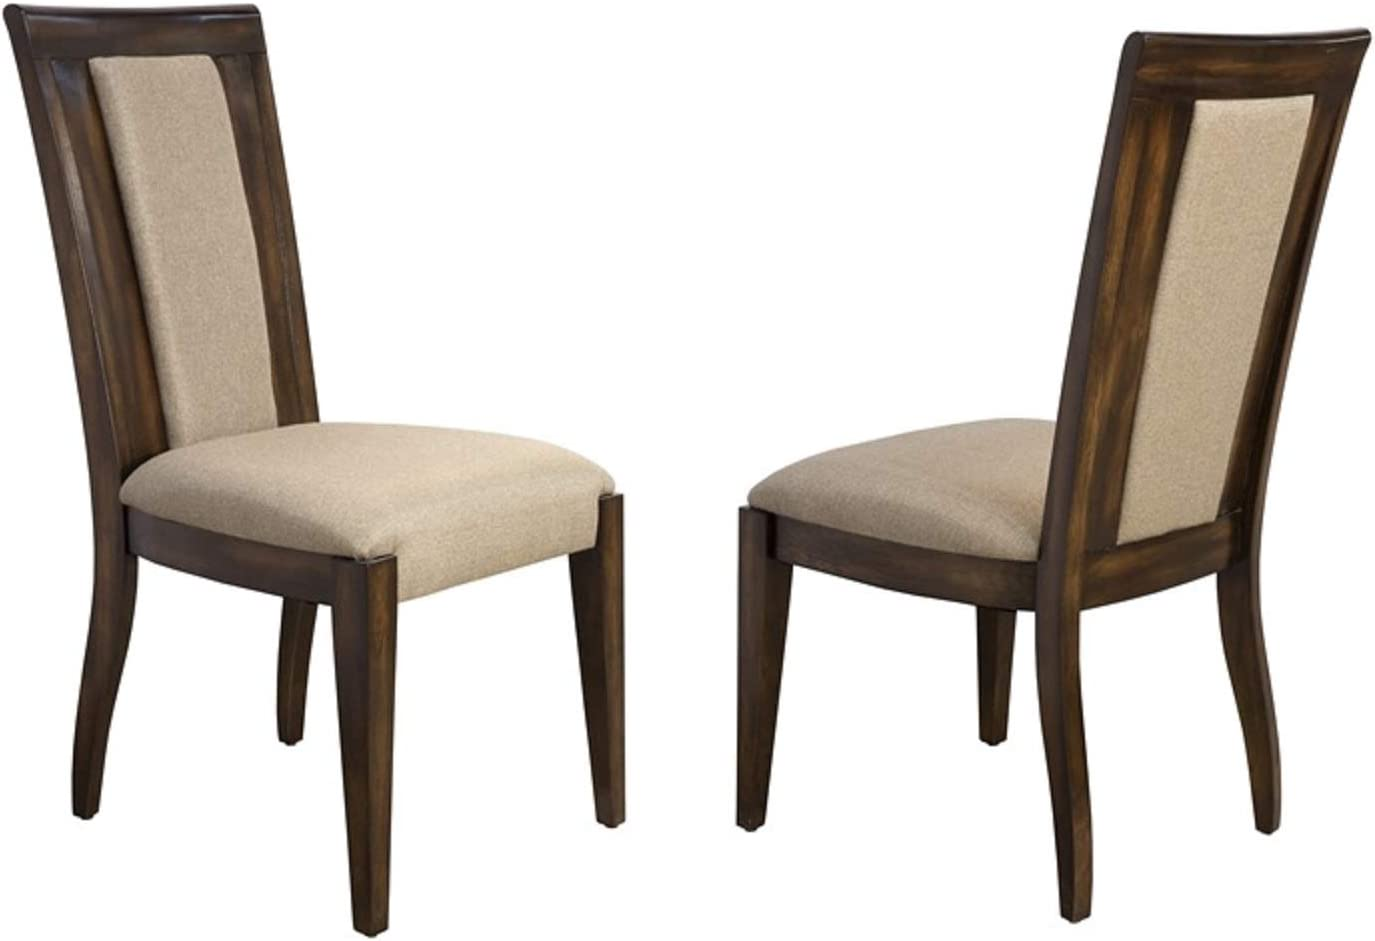 Bombay Cicero Hardwood Upholstered Dining Chairs, Set of 2, Pecan, Brown